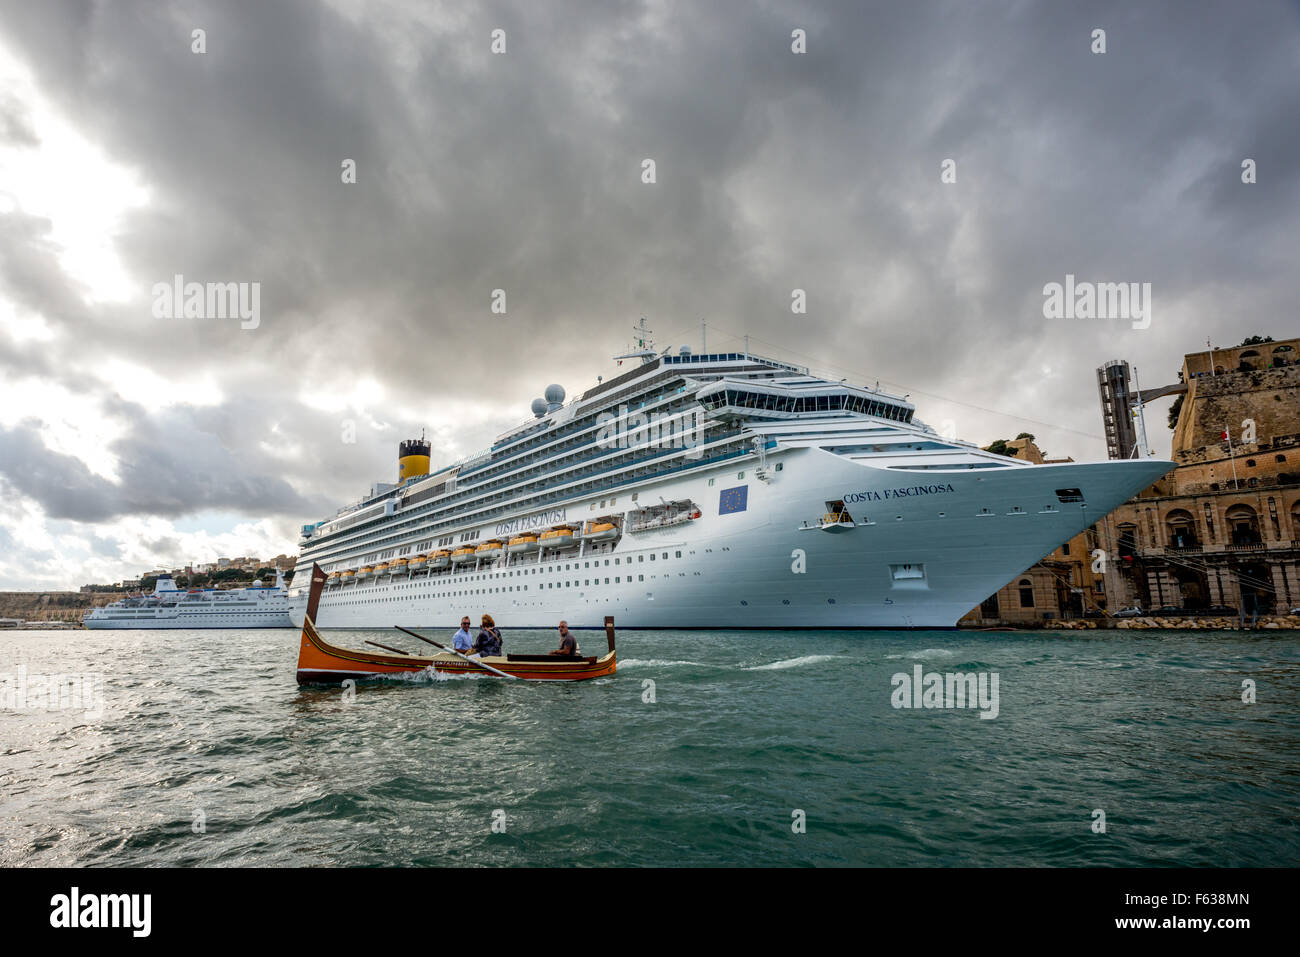 A traditional Maltese boat passes in front of a cruise liner in Valletta Harbour, Malta. - Stock Image